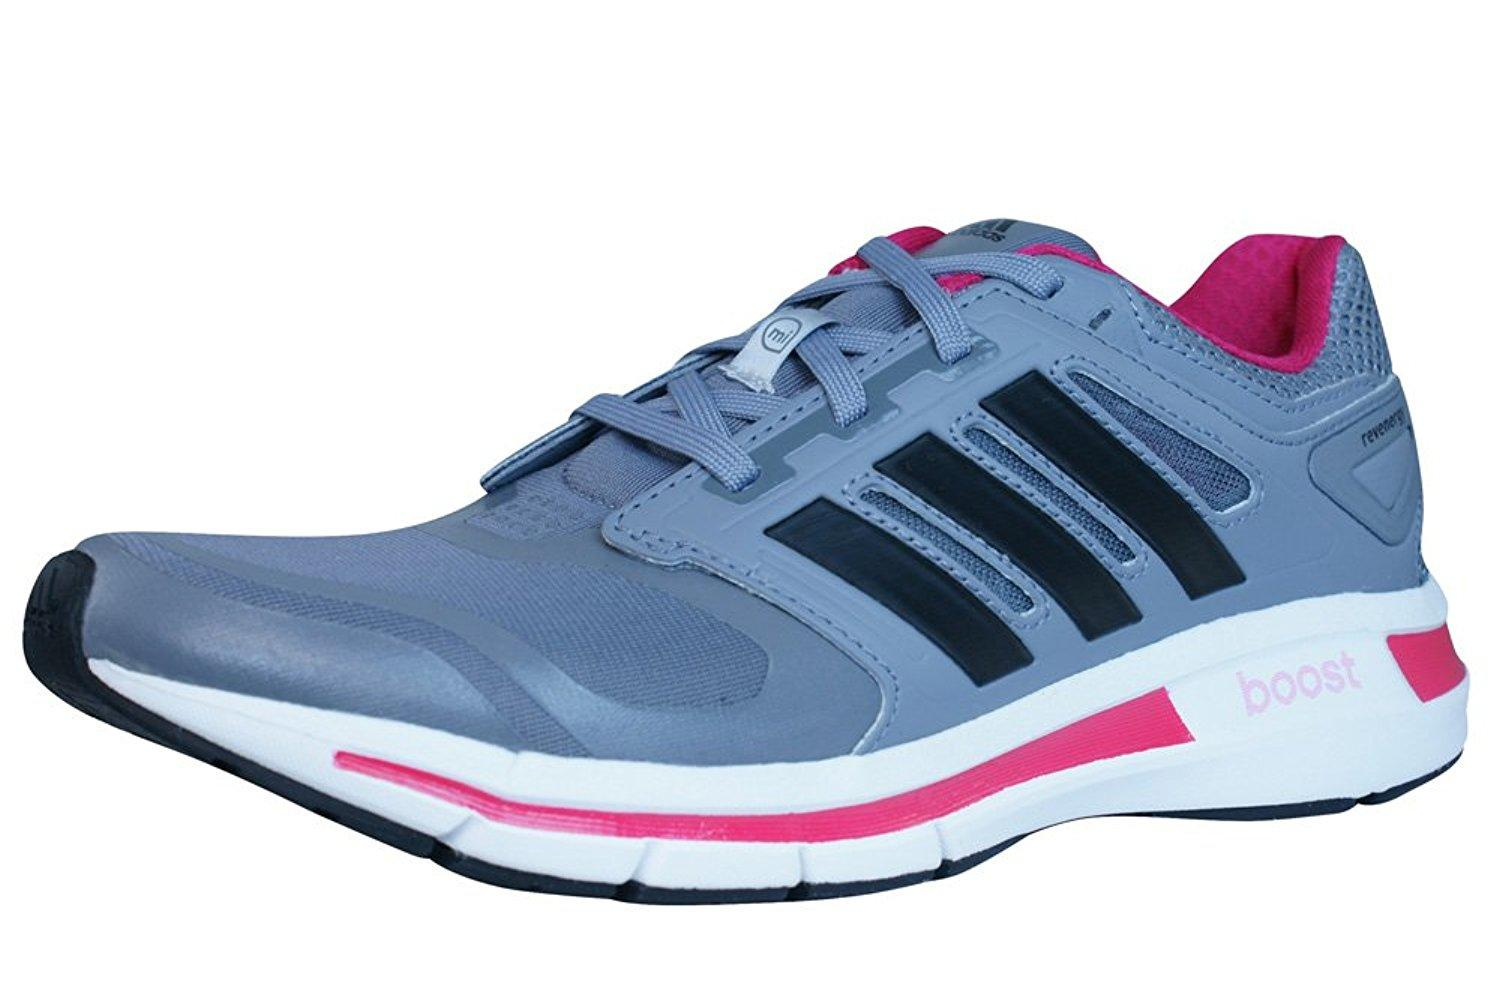 Adidas Revenergy boost is great for beginning and experienced runners alike